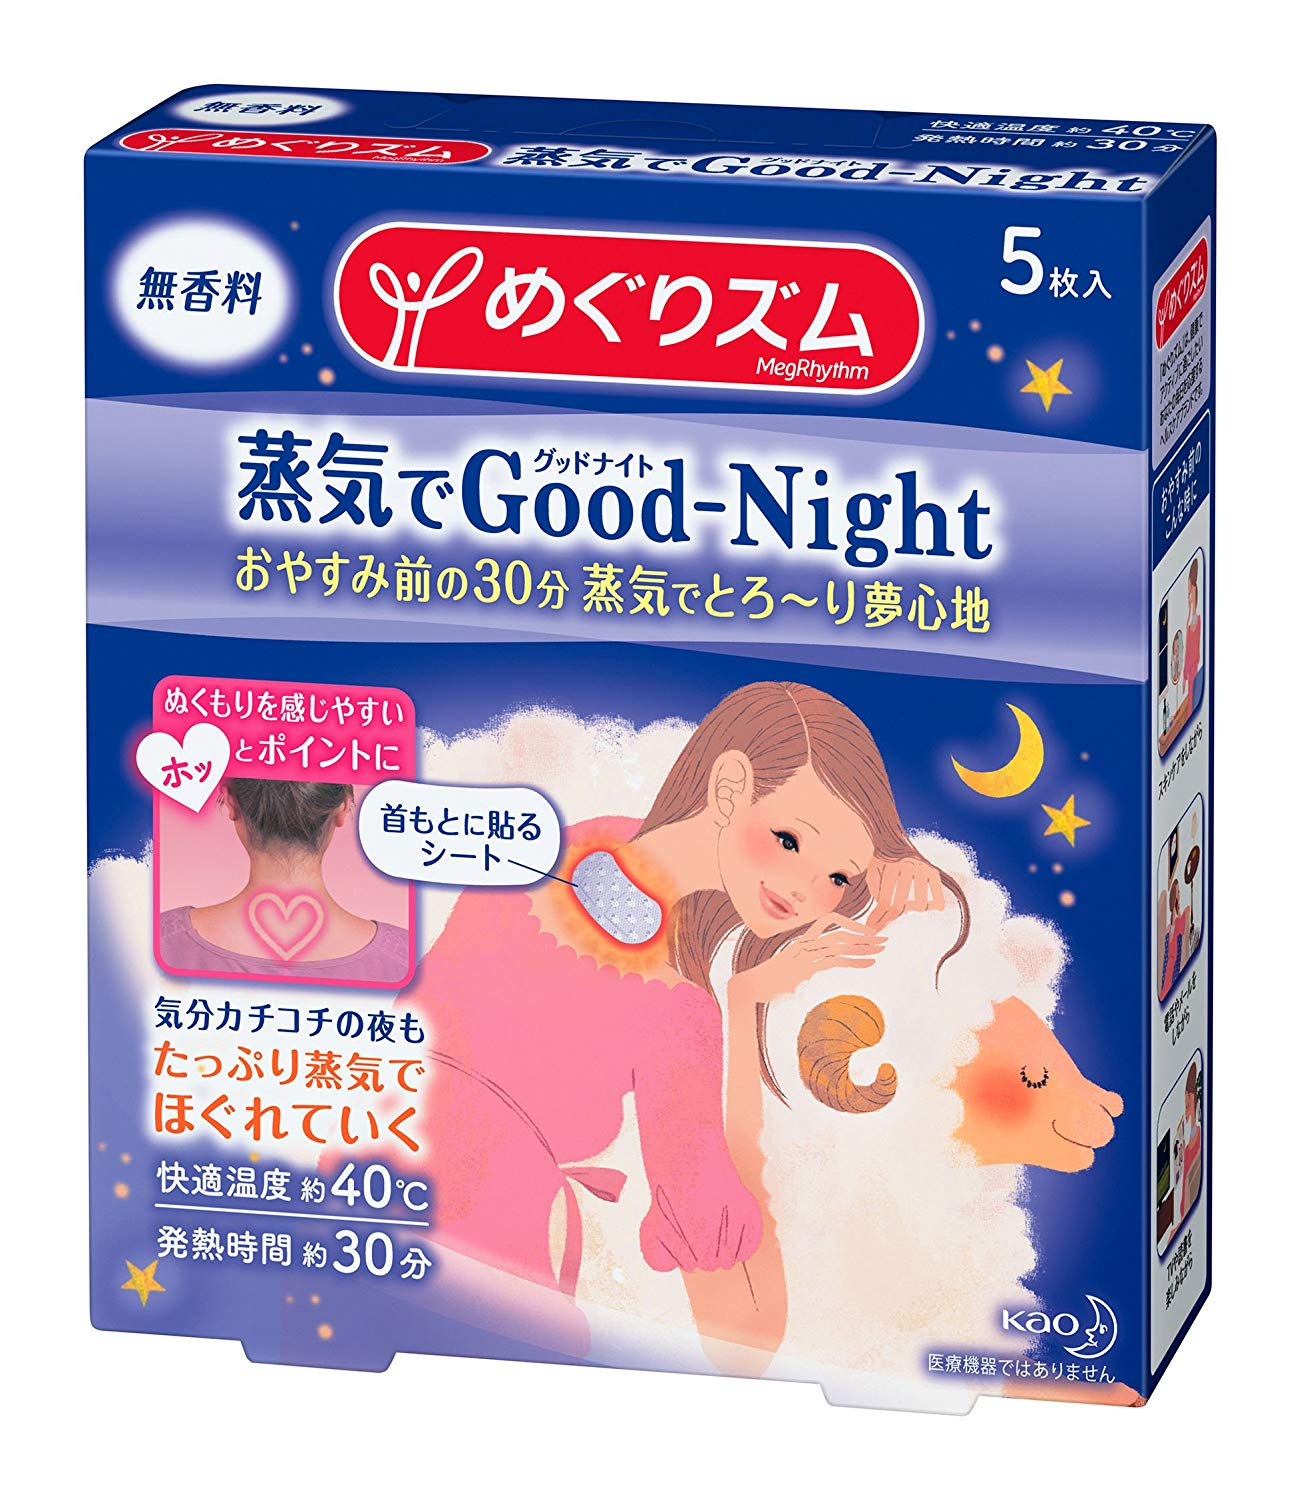 MegRhythm Good Night Steam Patch